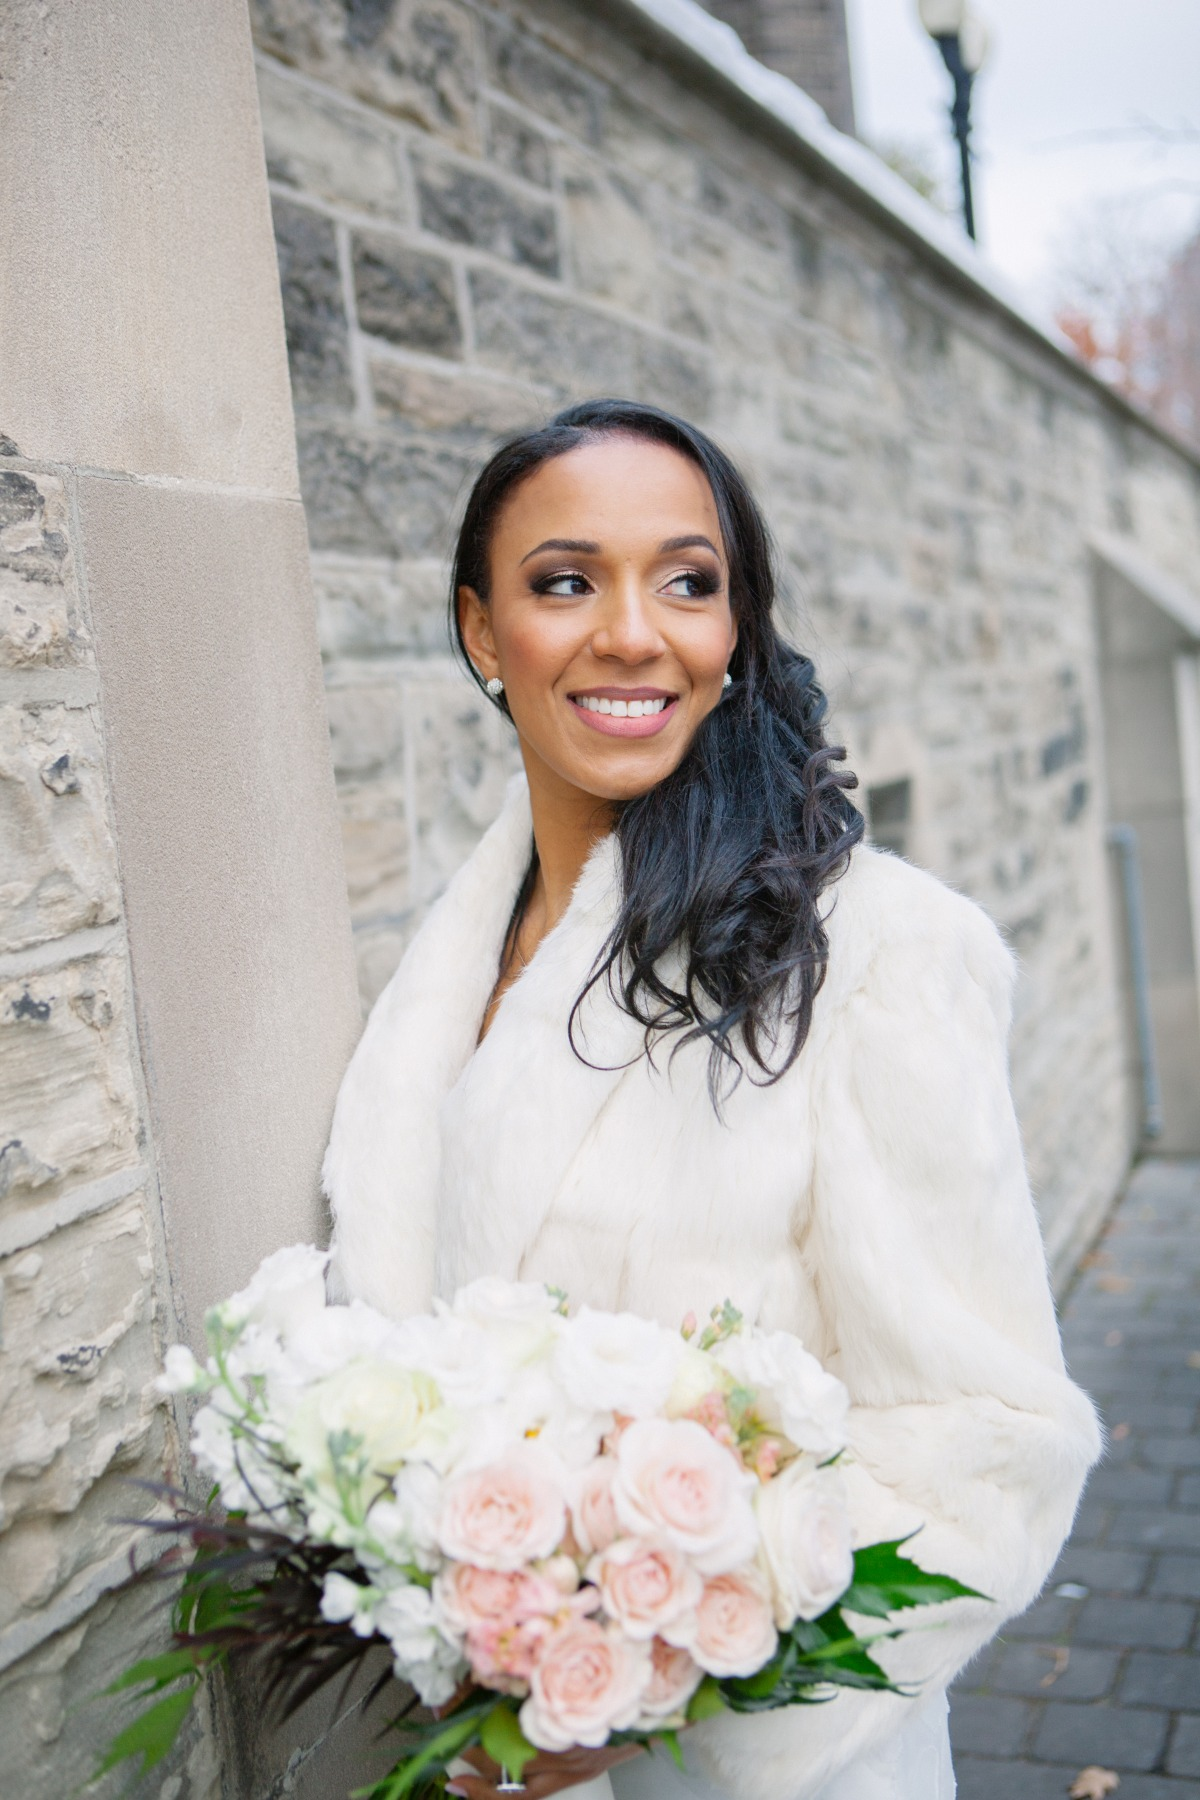 How To Combine Two Distinct Cultures Into One Unforgettable Wedding